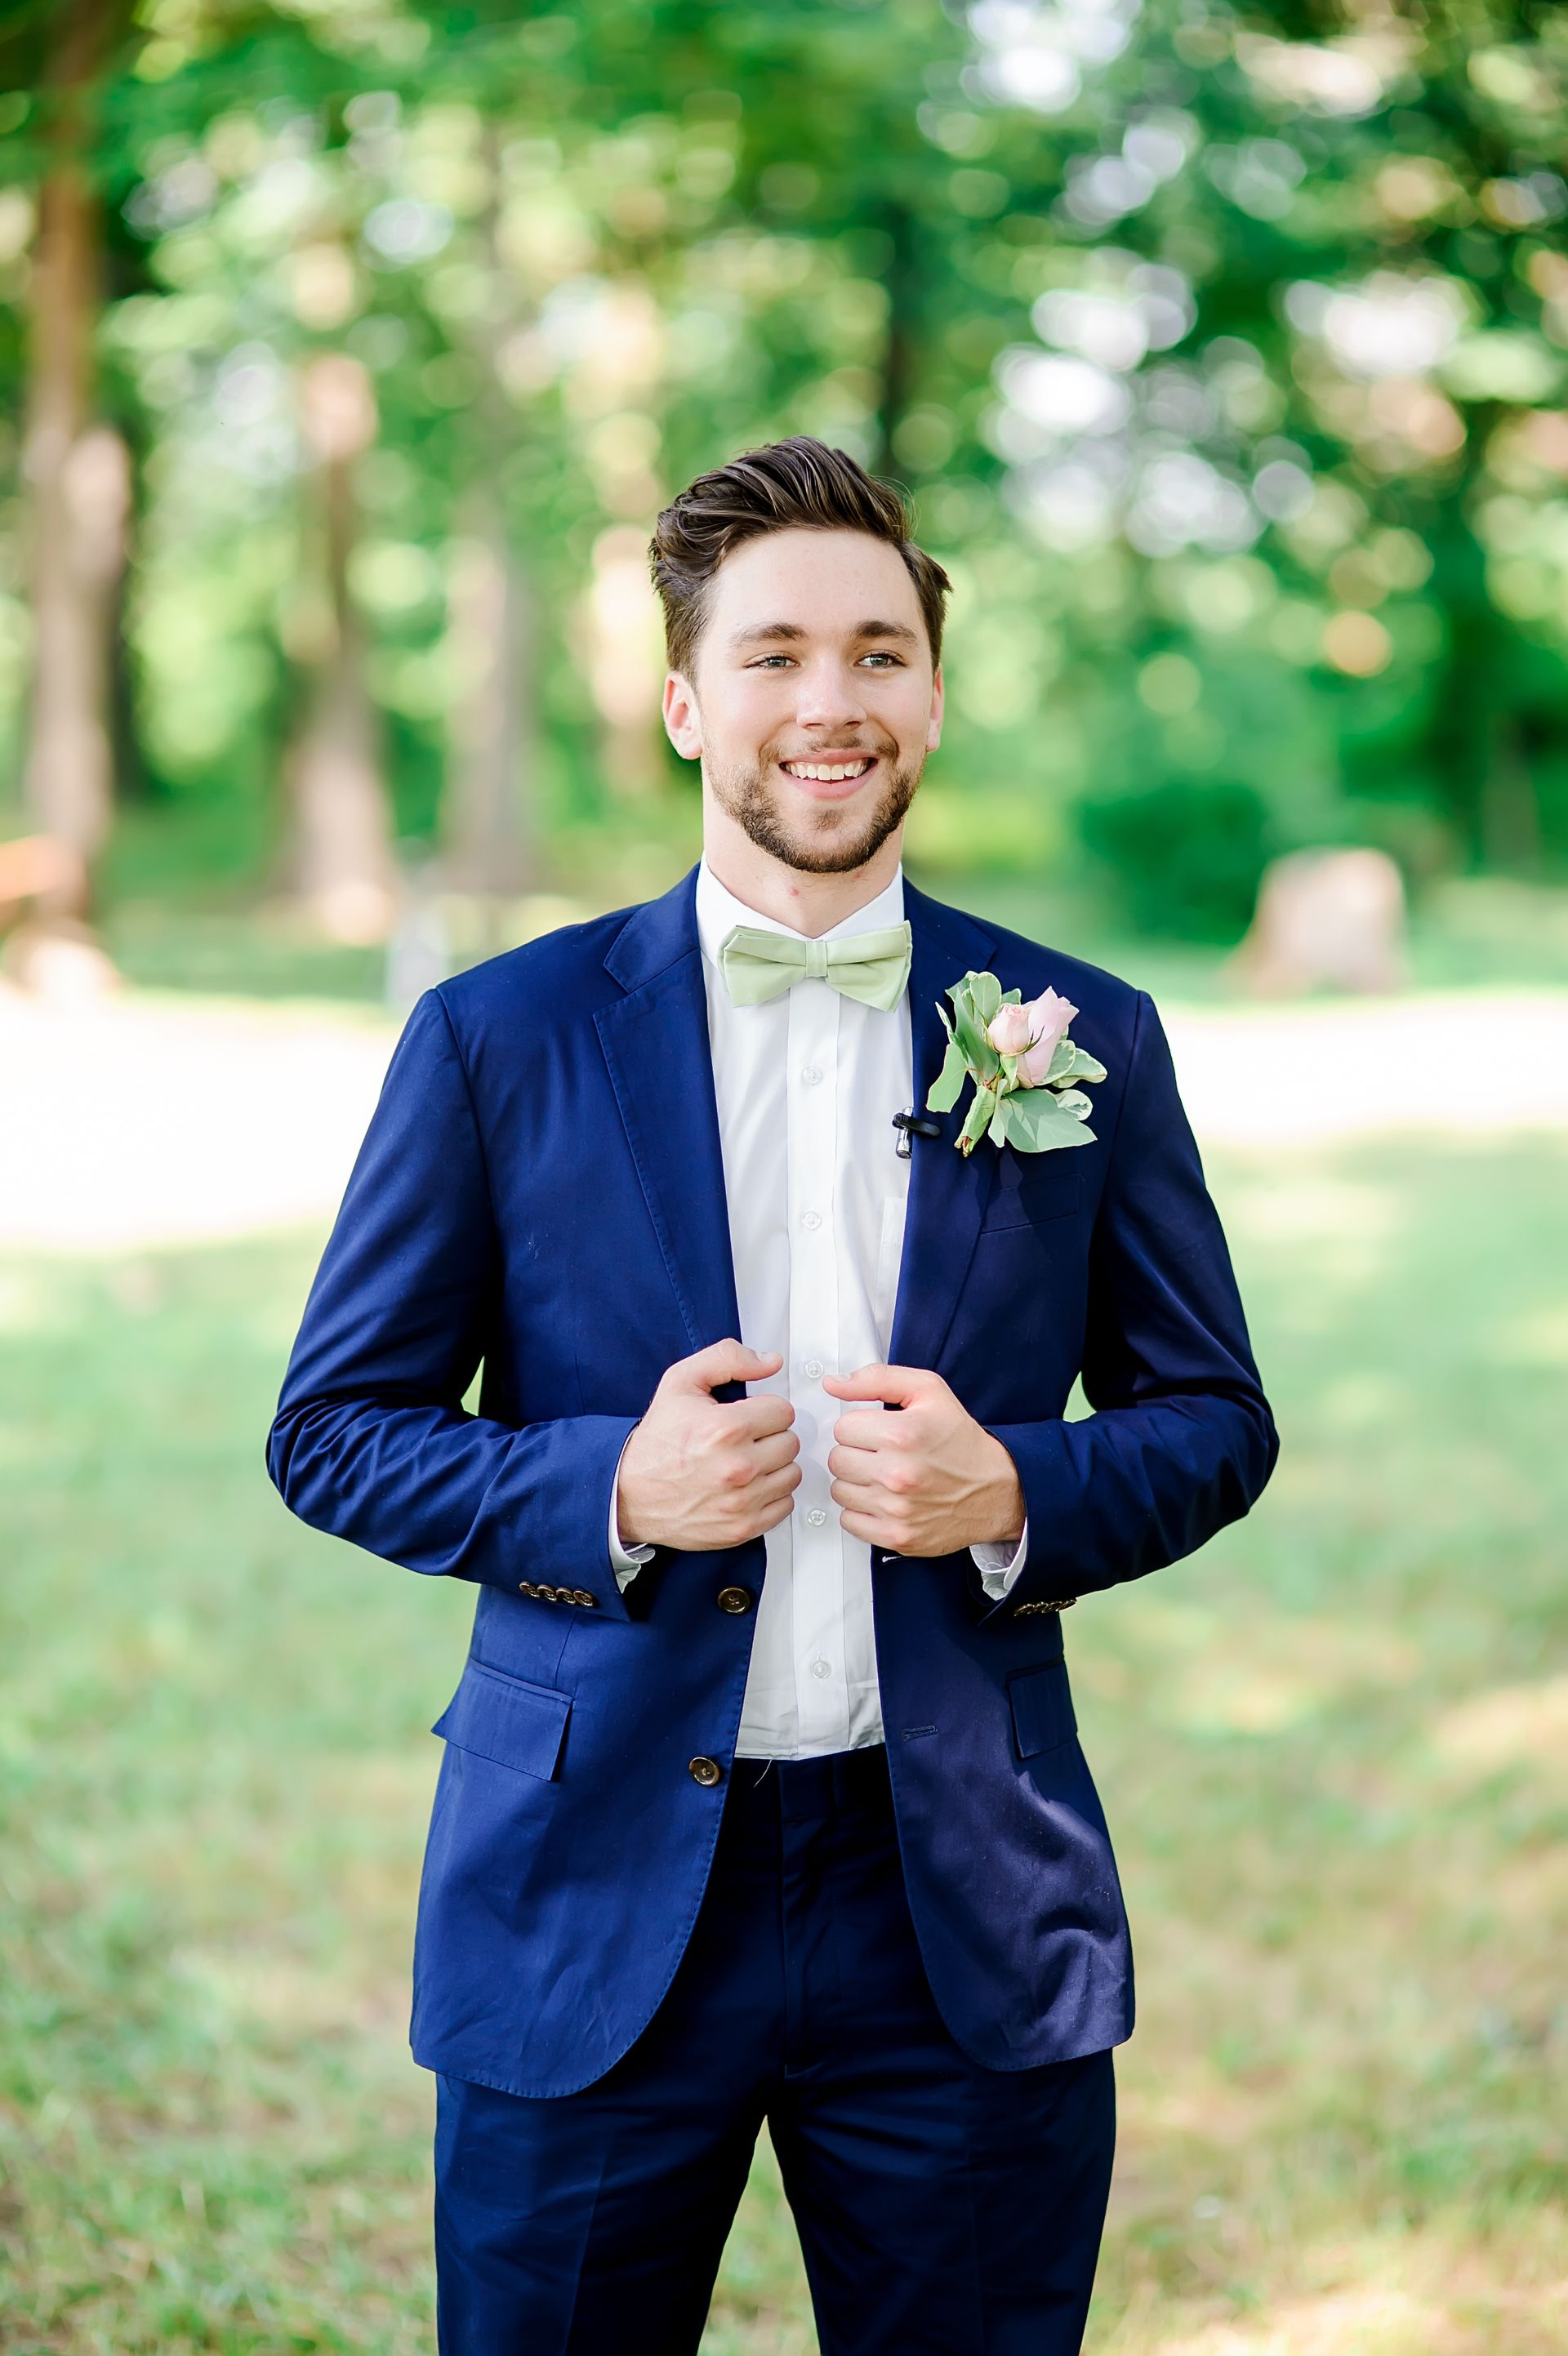 Pink dress shirt blue suit  The Smarter Way to Wed  Groom suit ideas  Pinterest  Navy blue